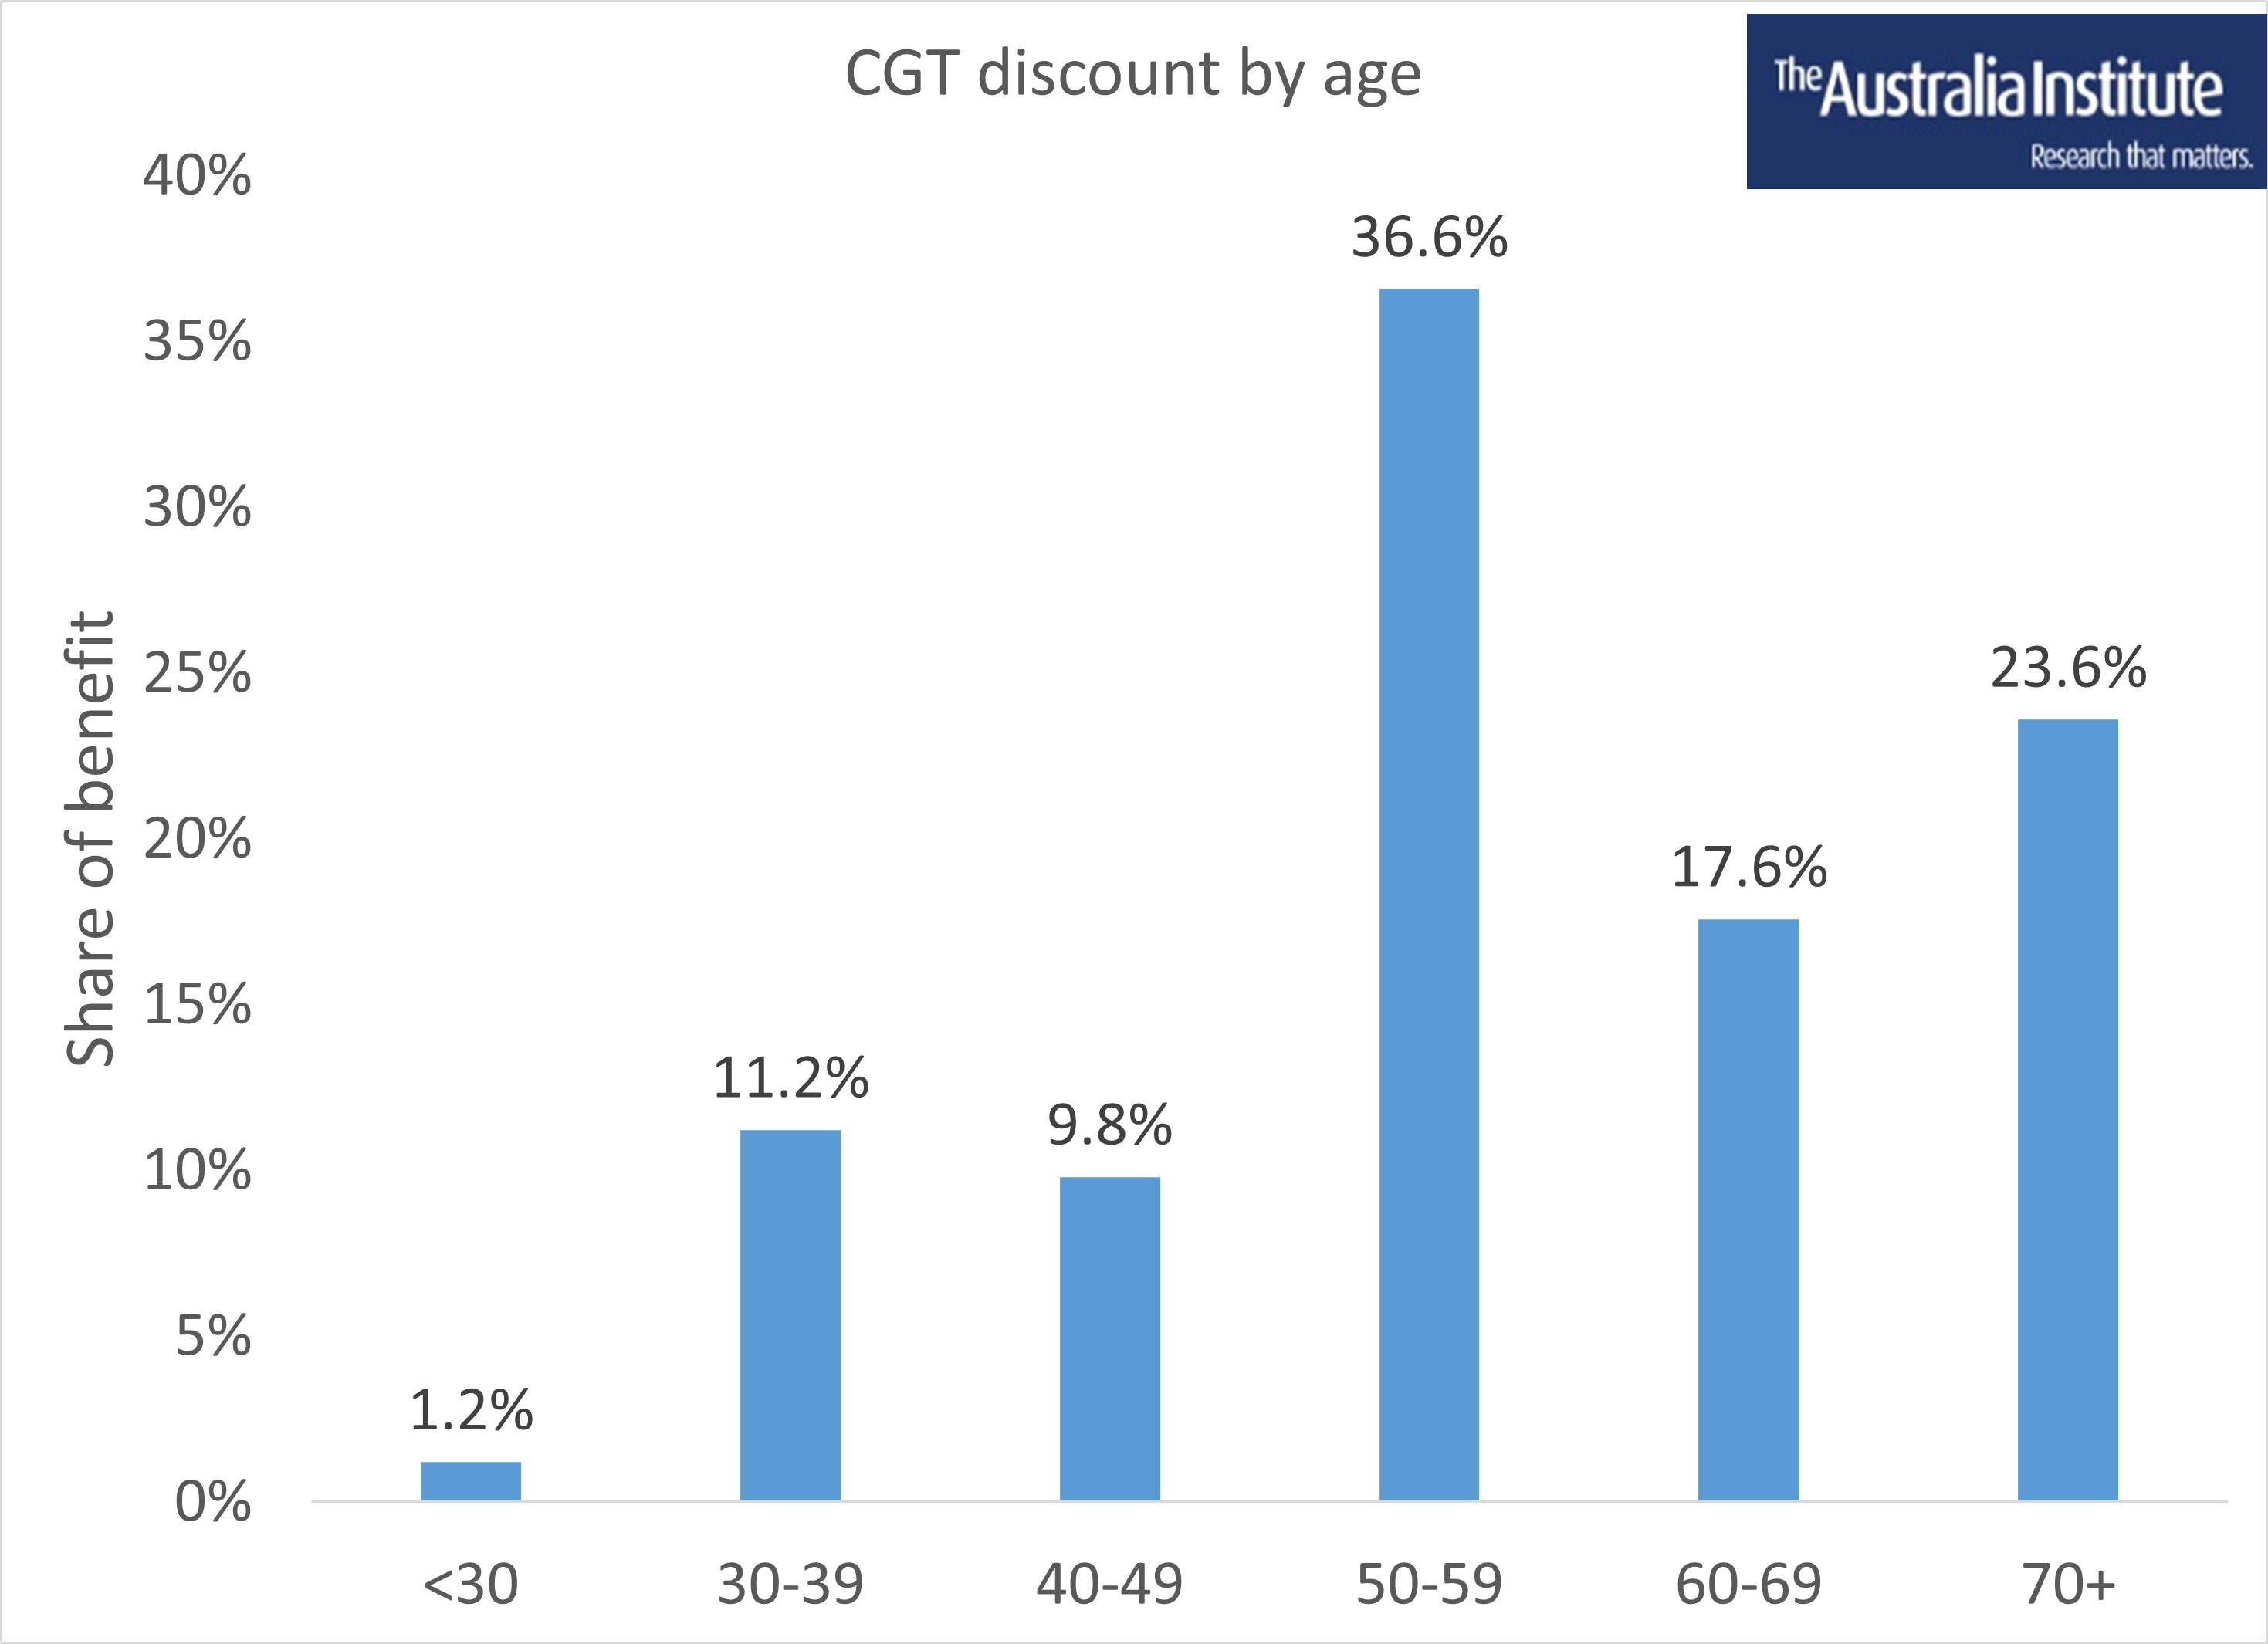 CGT discount by age (002)